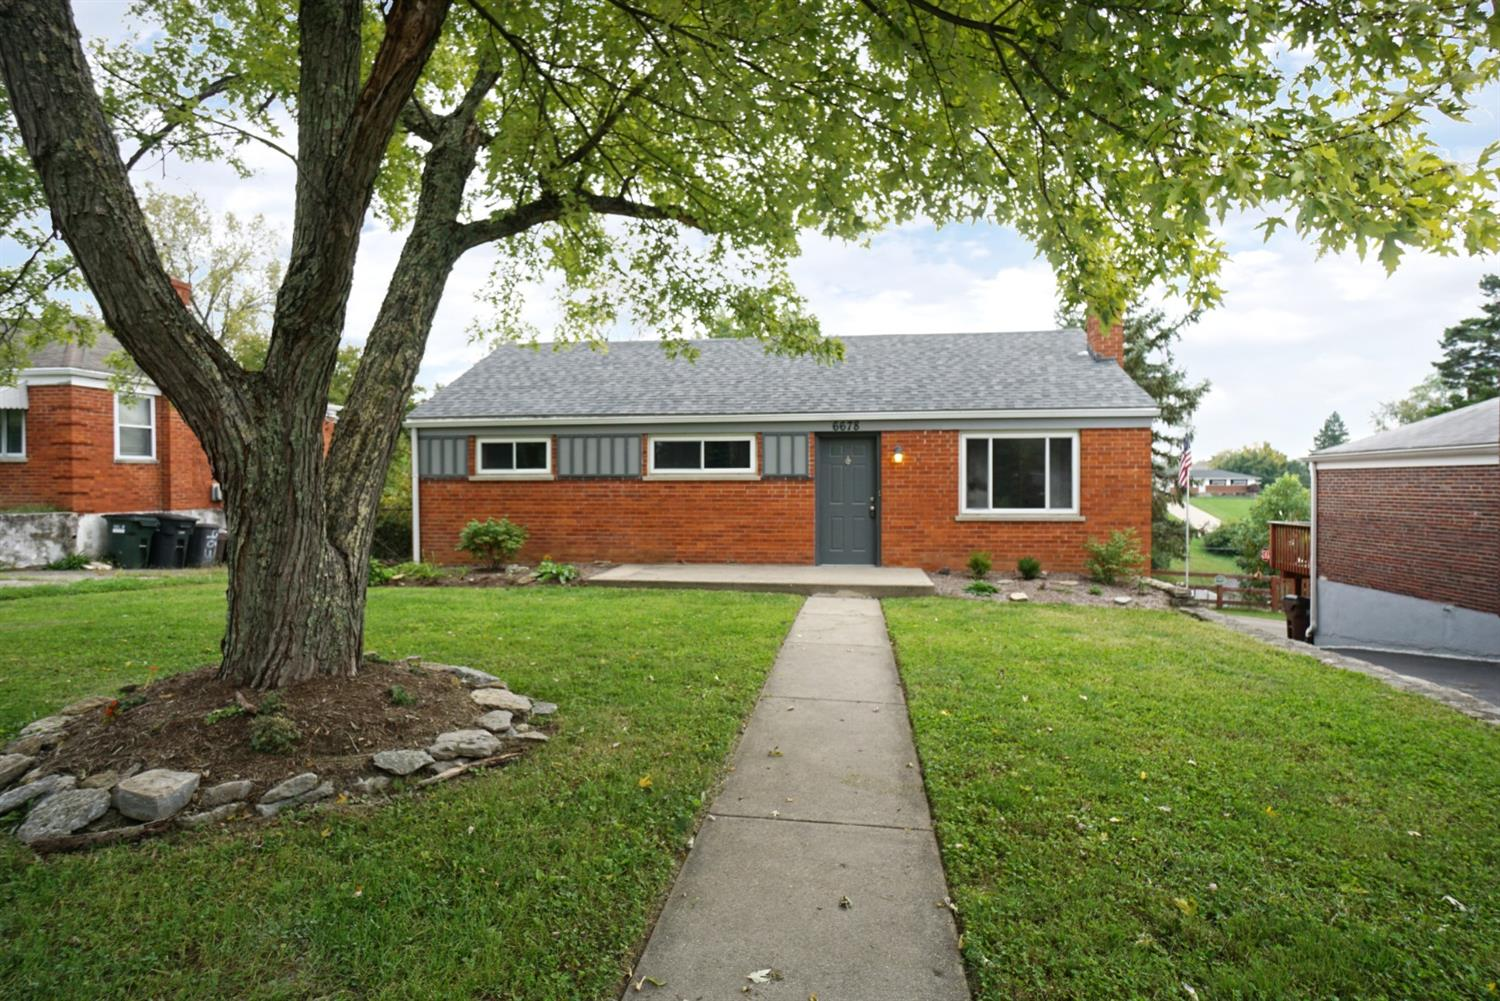 6678 Daleview Rd Colerain Twp.West, OH